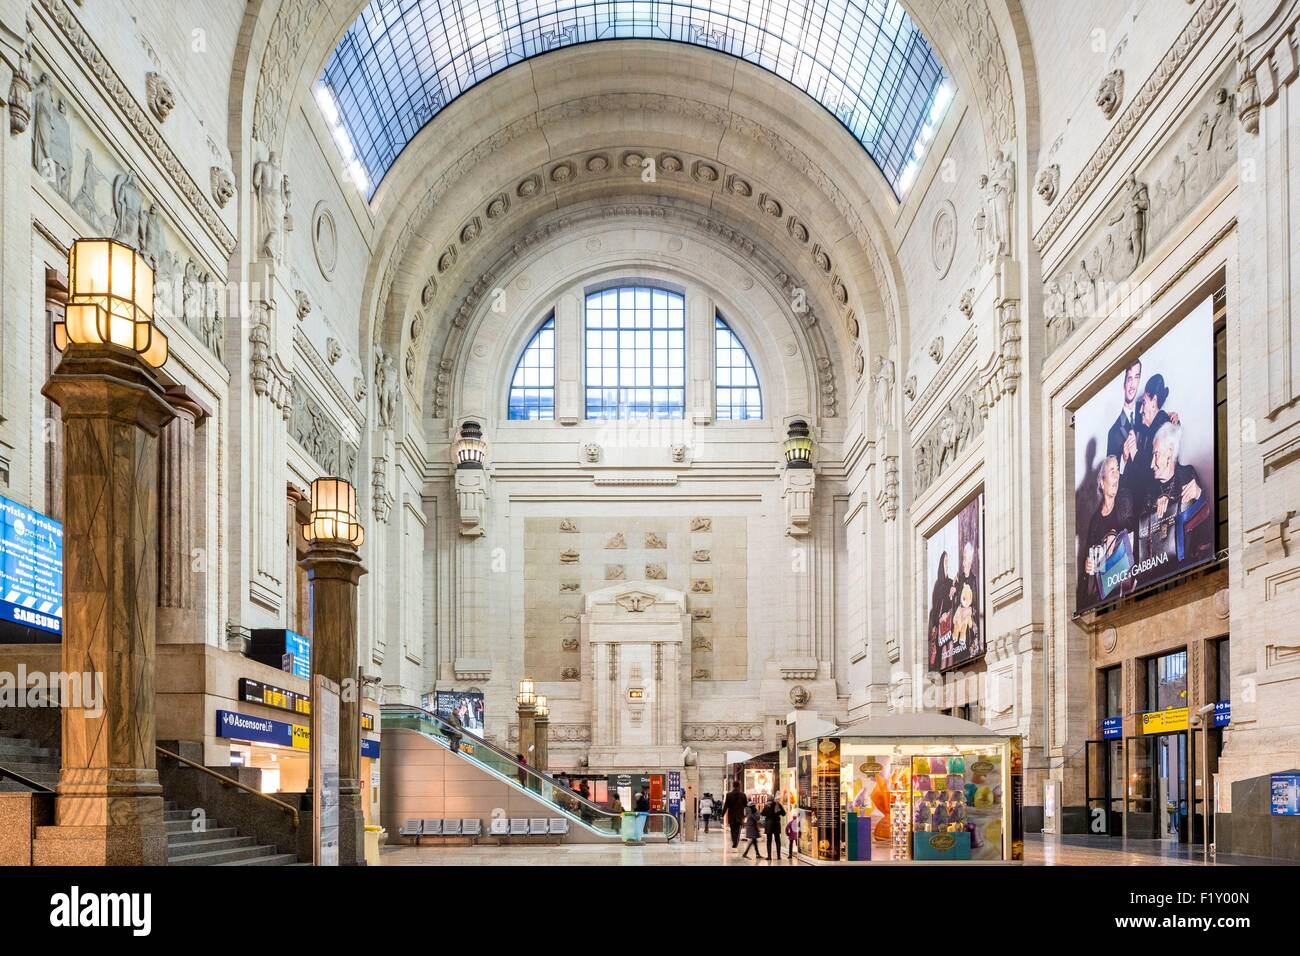 Italy, Lombardy, Milan, Piazza Duca d'Aosta, central station designed by architect Ulisse Stacchini and inaugurated - Stock Image